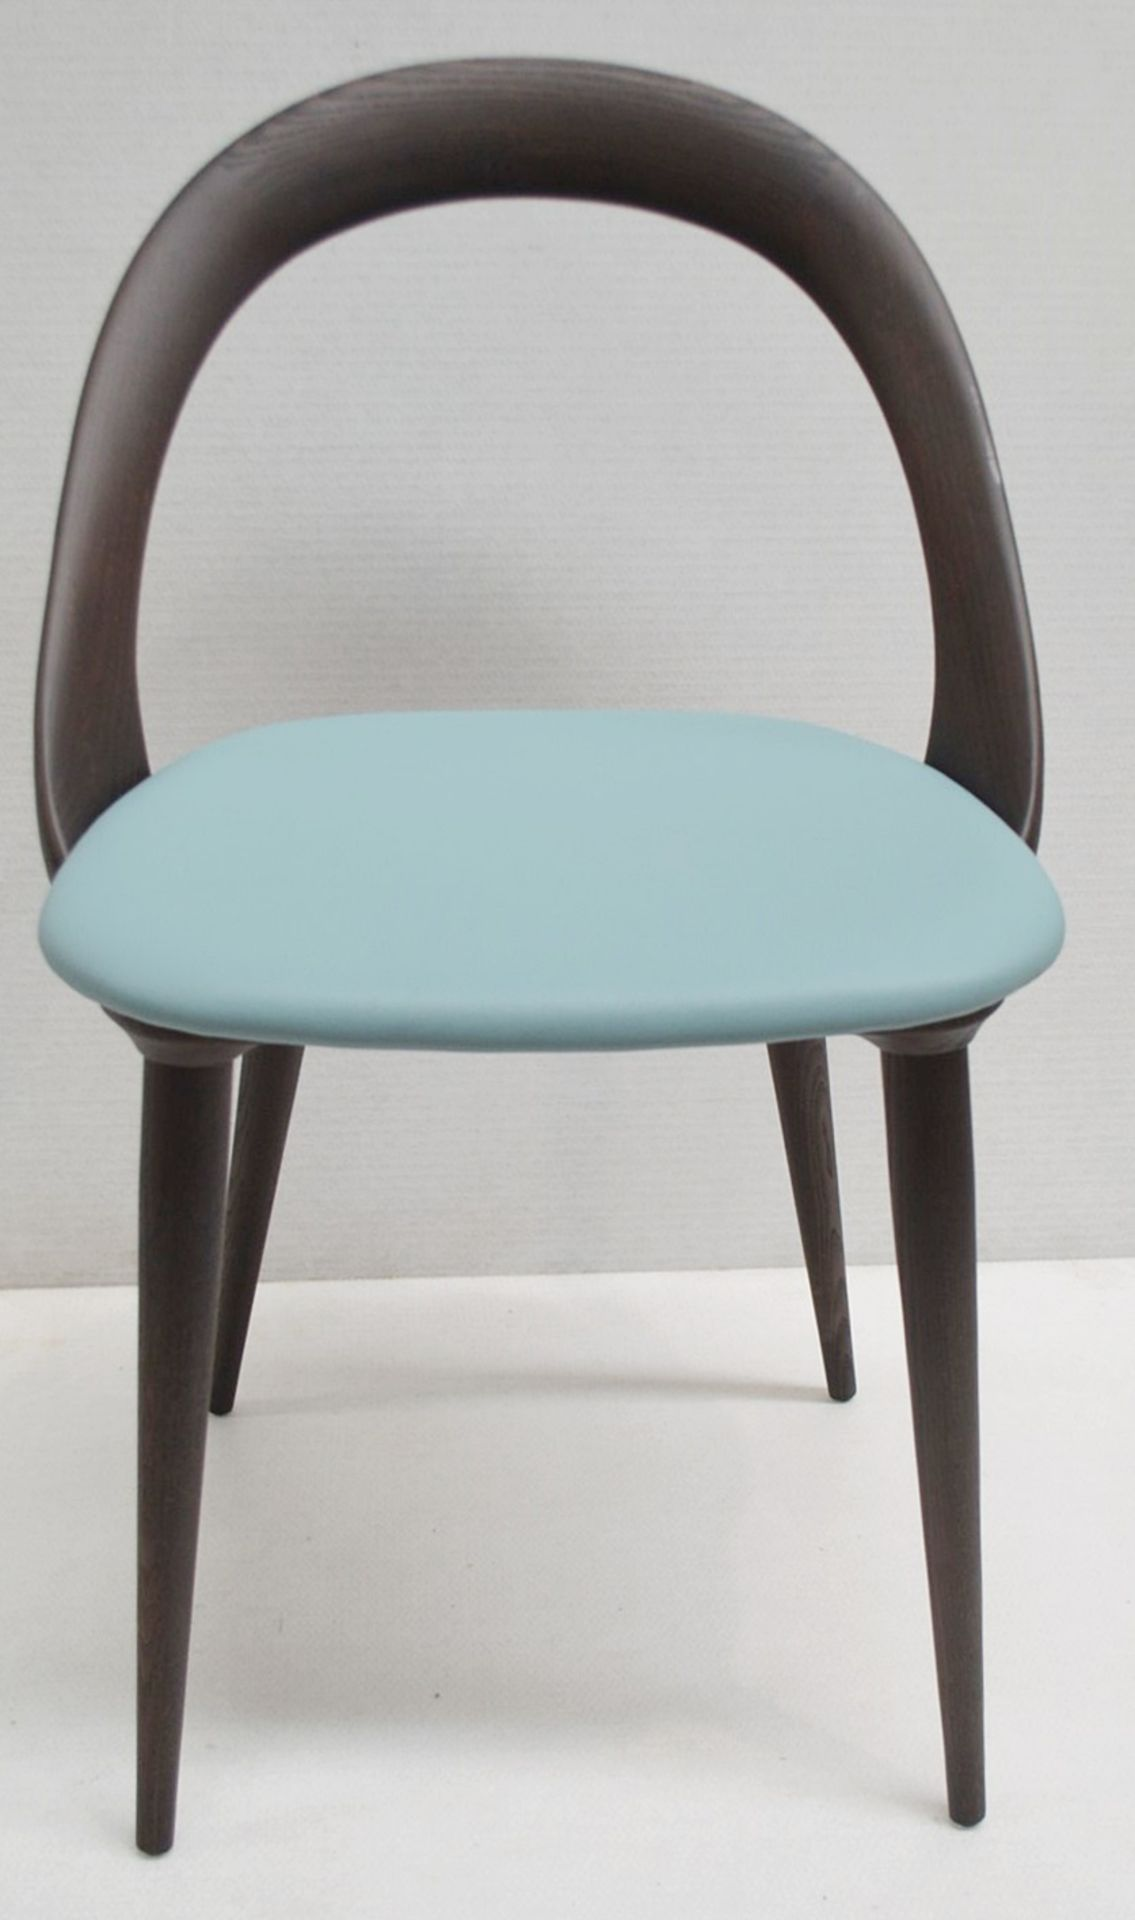 Set Of 4 x PORADA 'Ester' Italian Designer Dining Chairs Featuring Leather Seats - RRP £5,120 - Image 3 of 11